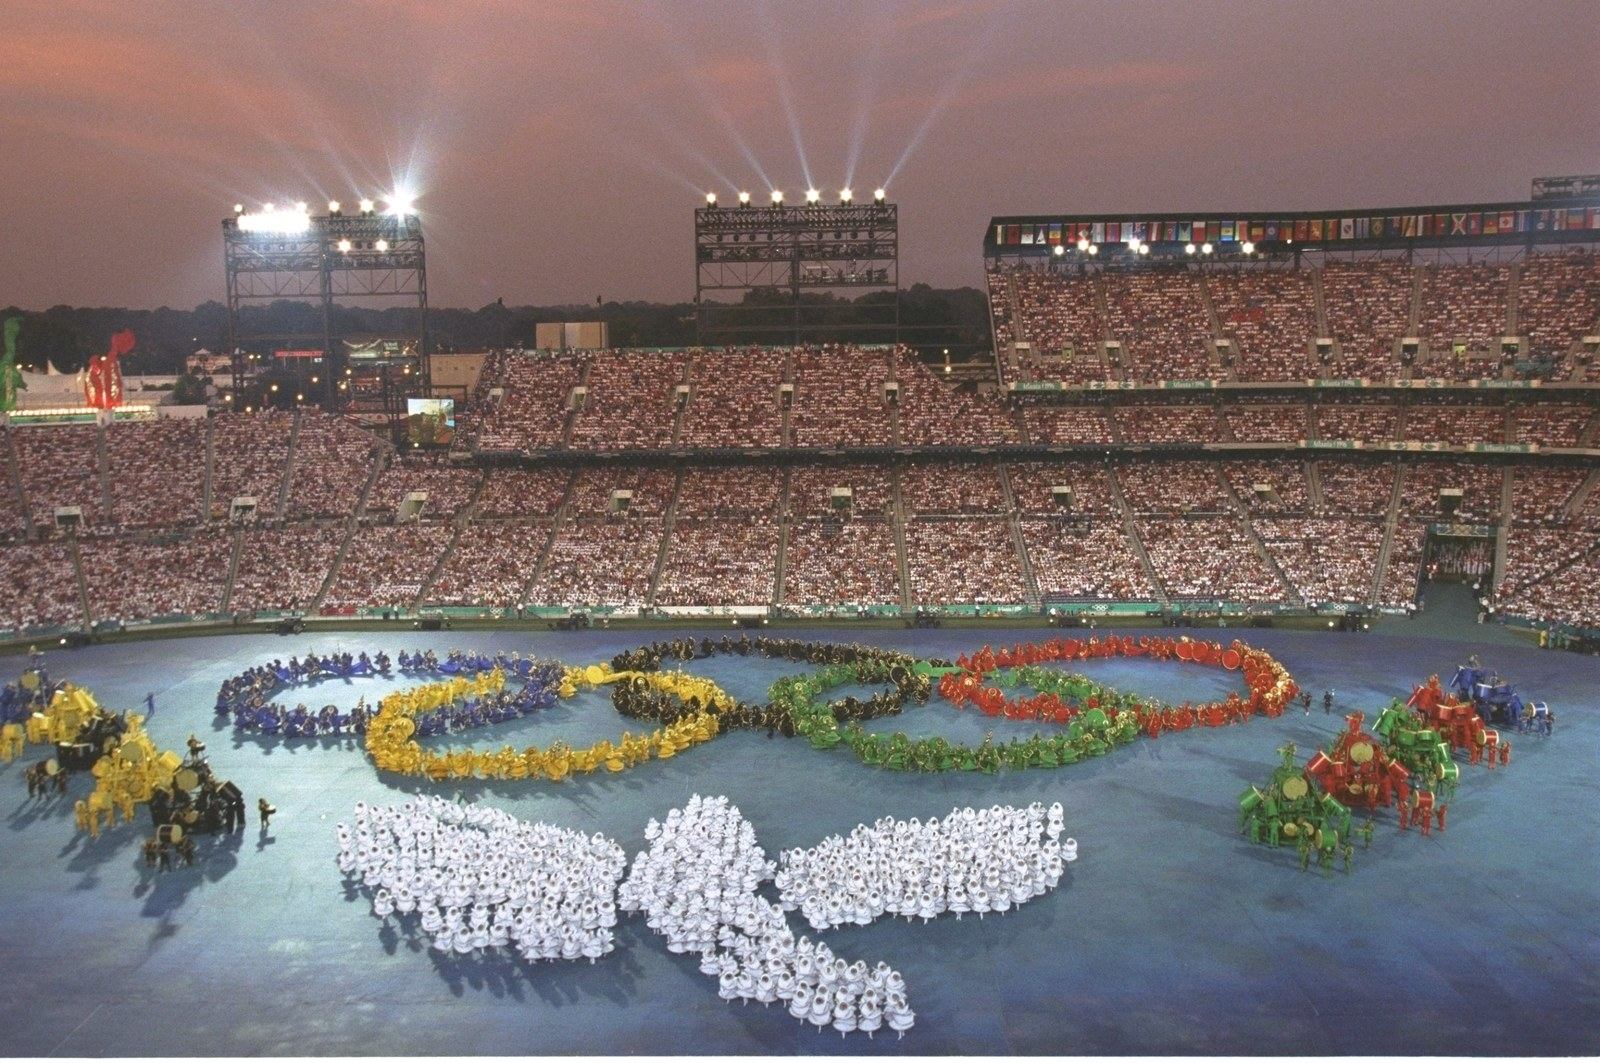 Photo from the opening ceremony of the Olympics